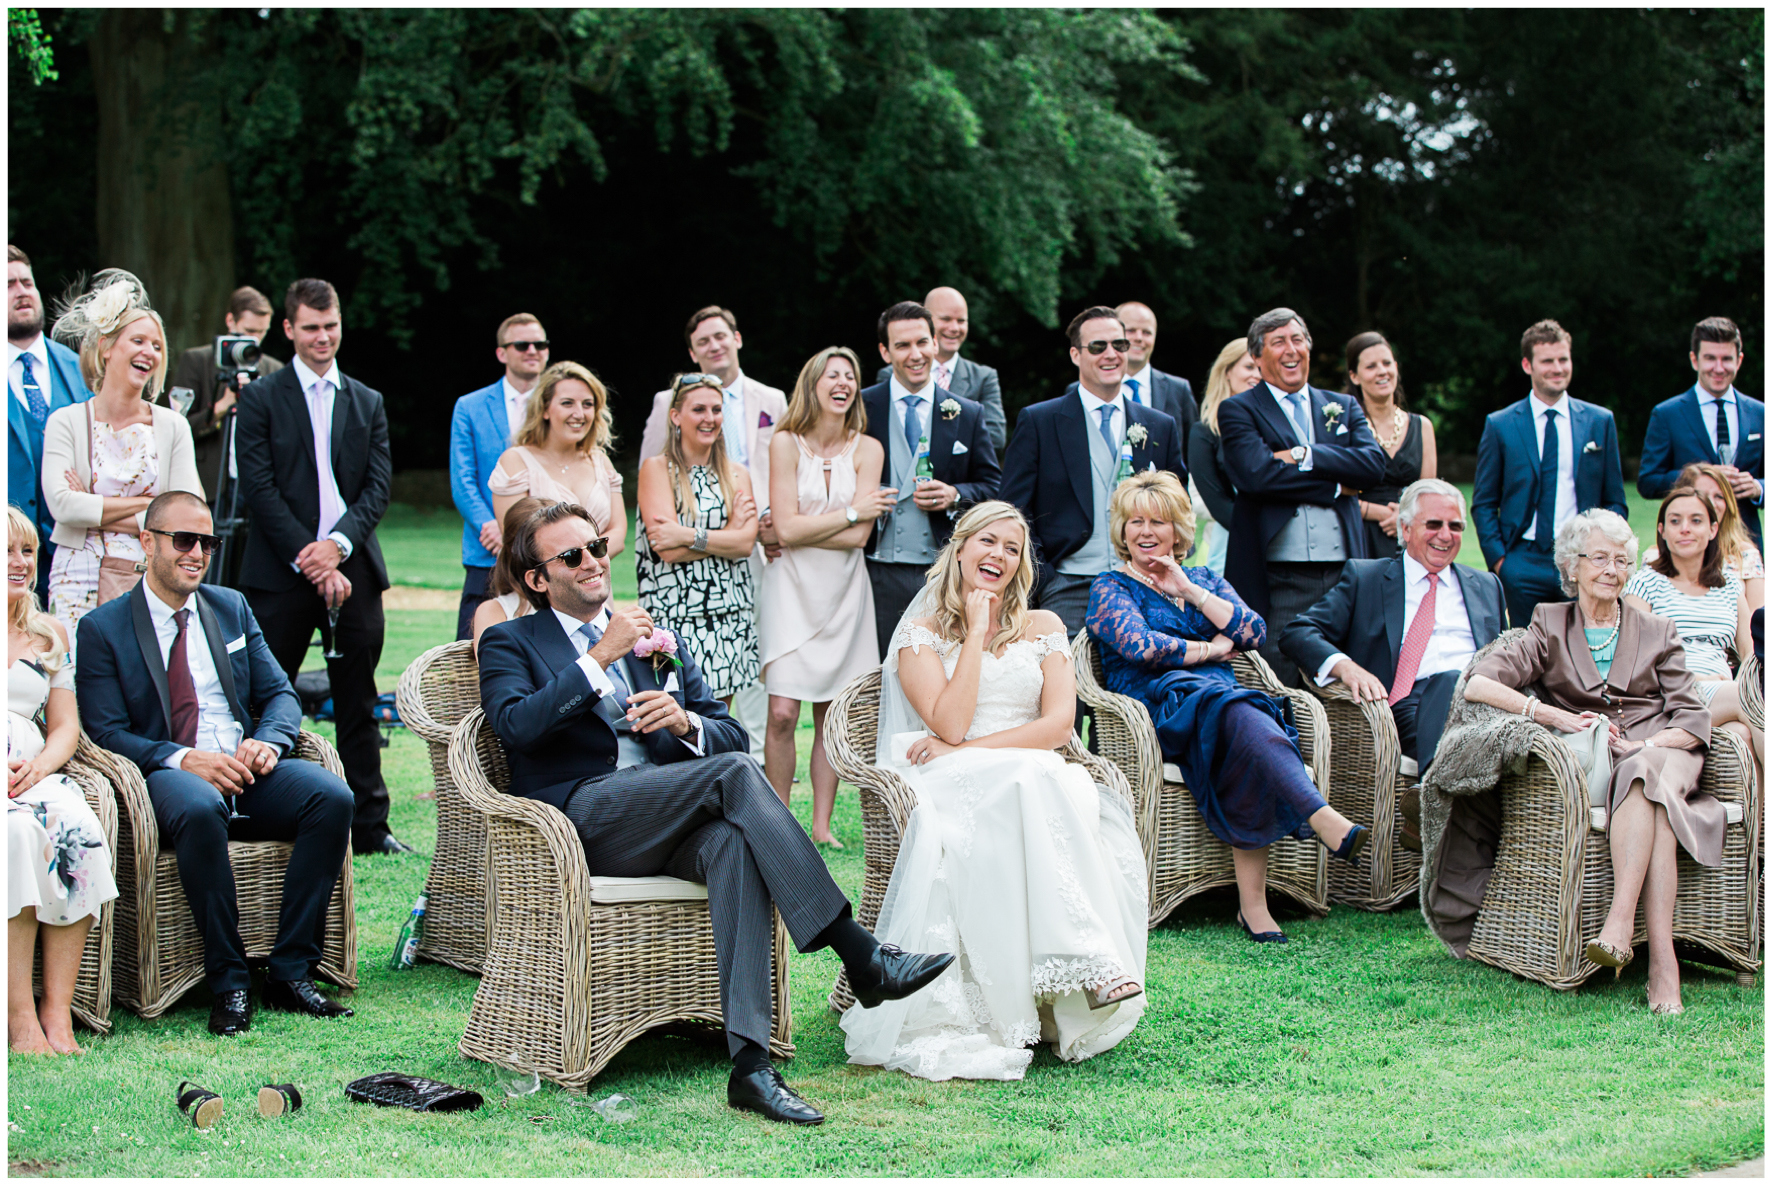 Aynhoe Park, wedding venue, speeches, guests, outdoor wedding,